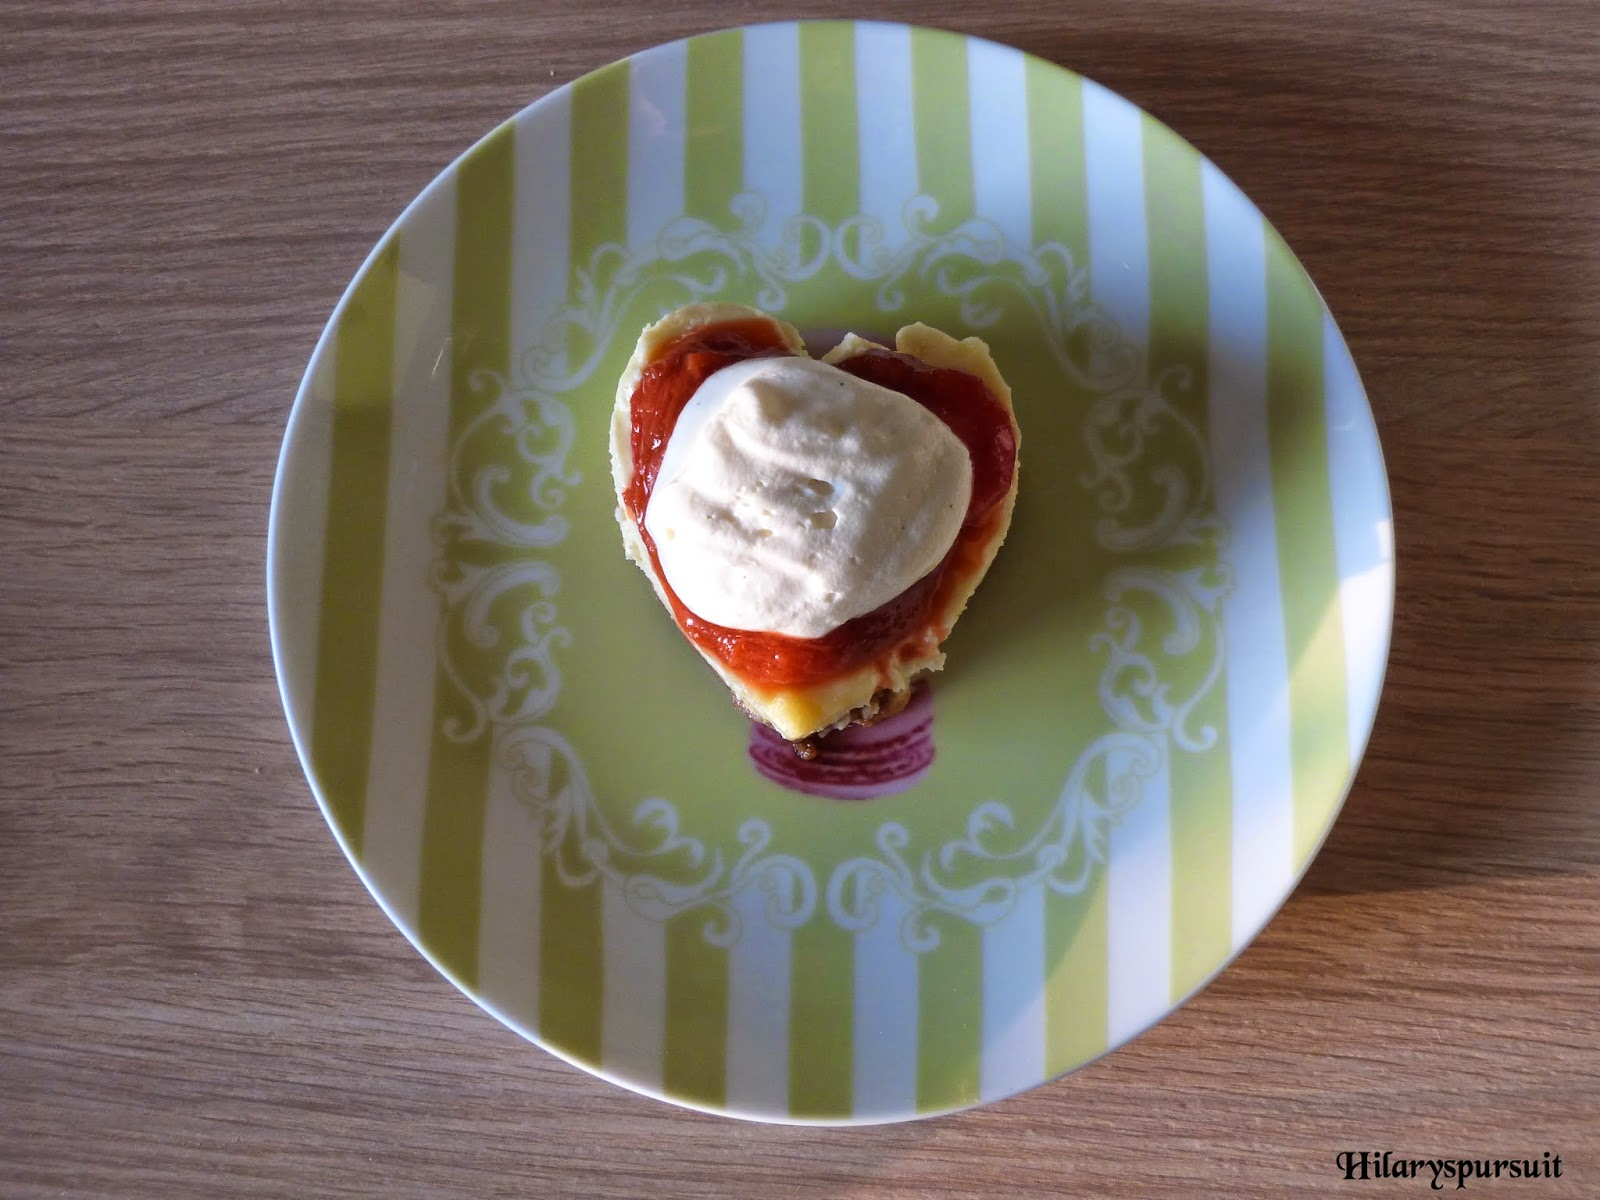 Ma version du cheesecake fraise-rhubarbe de Christophe Michalak